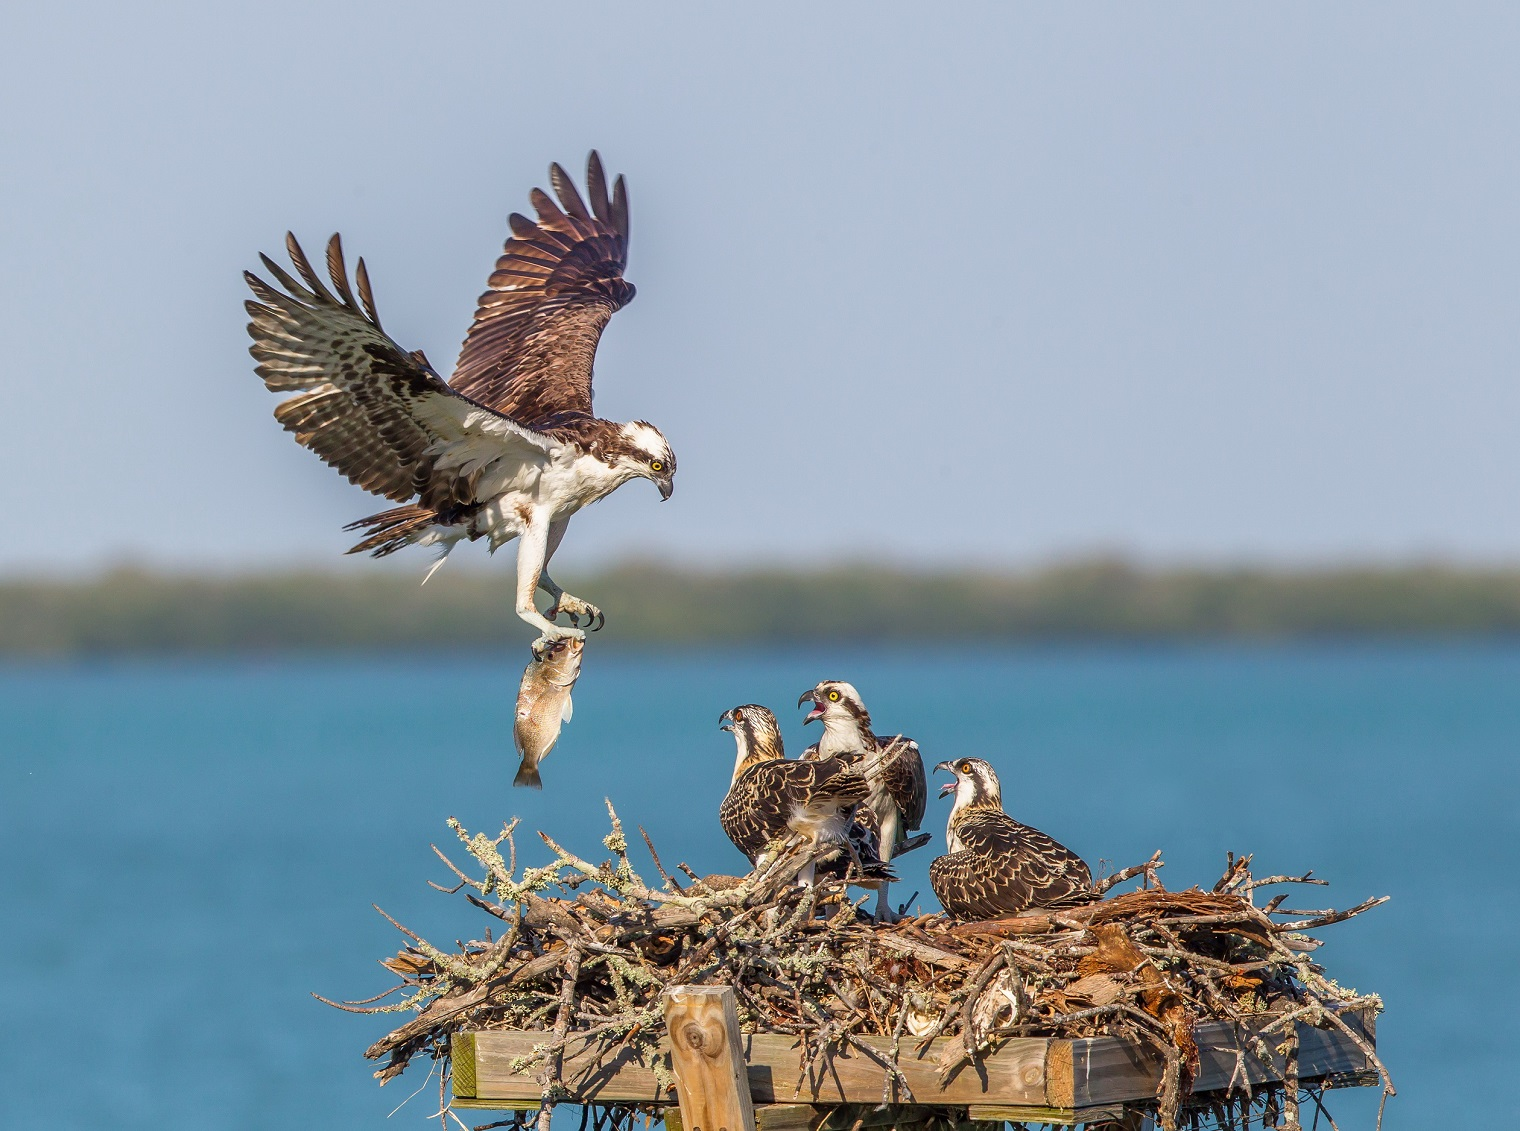 © Osprey. Photographer Patricia Ann Wright Awarded HONORABLE MENTION for the 2015 Photography World Contest YOUR FOCUS ON THE WORLD